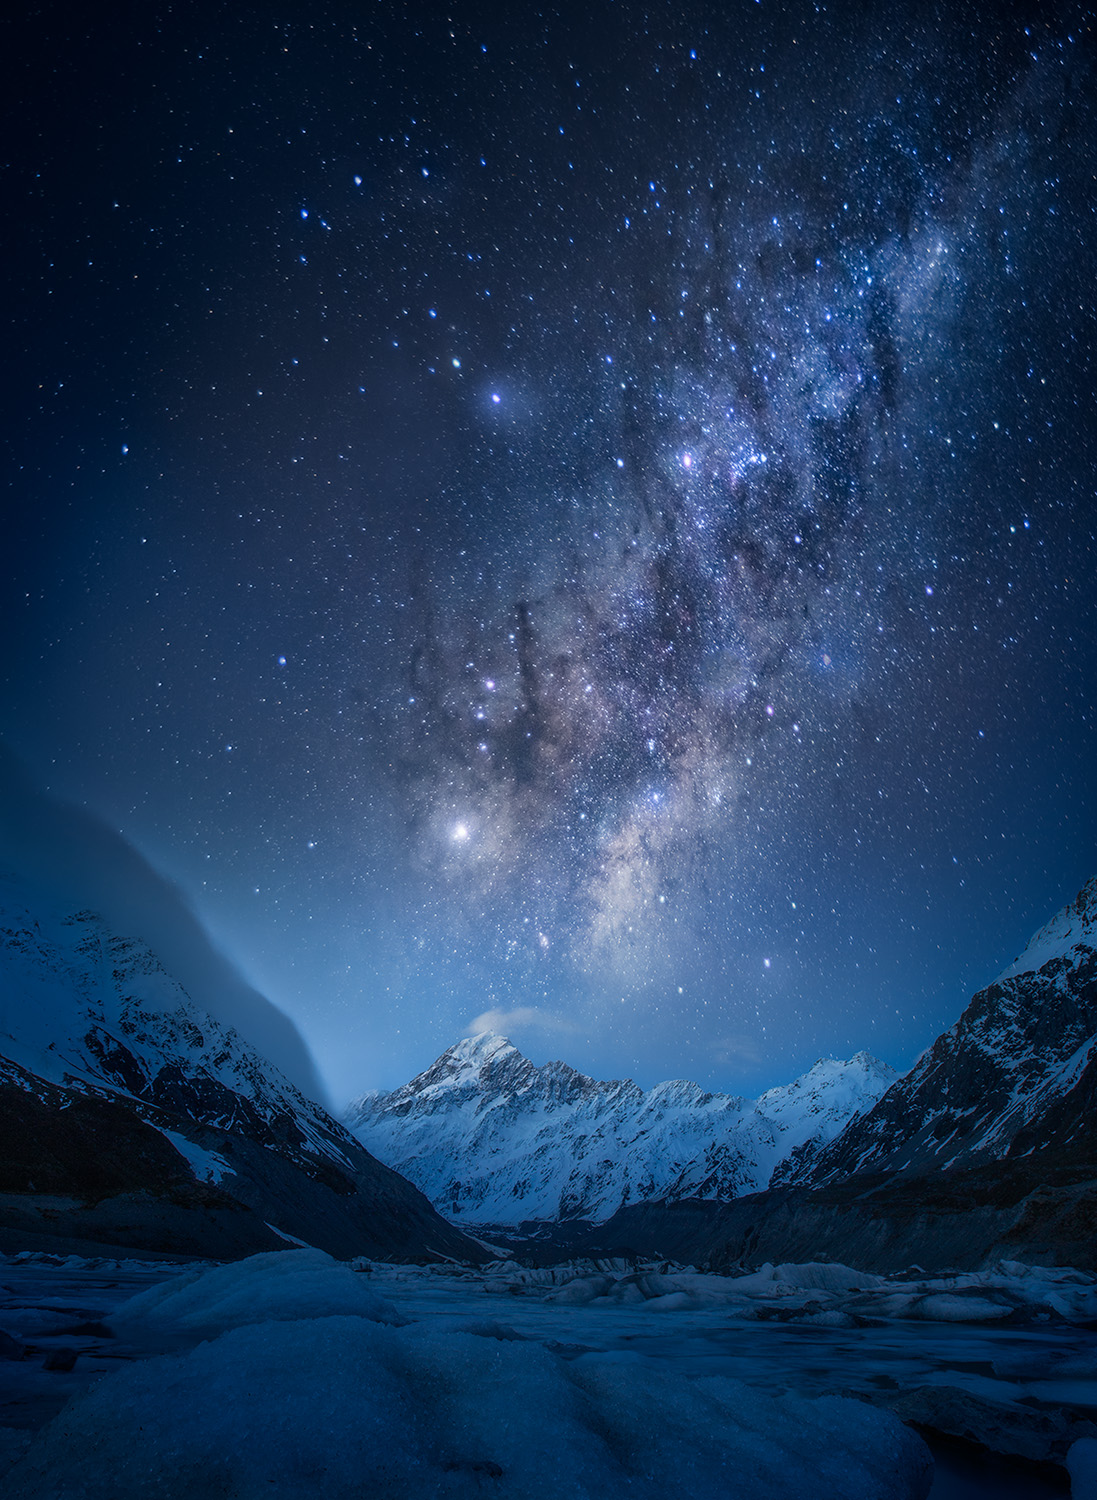 Astrophotography, Star Tracker, Vixon, composite - Mt Cook, Hooker Valley Track, New Zealand